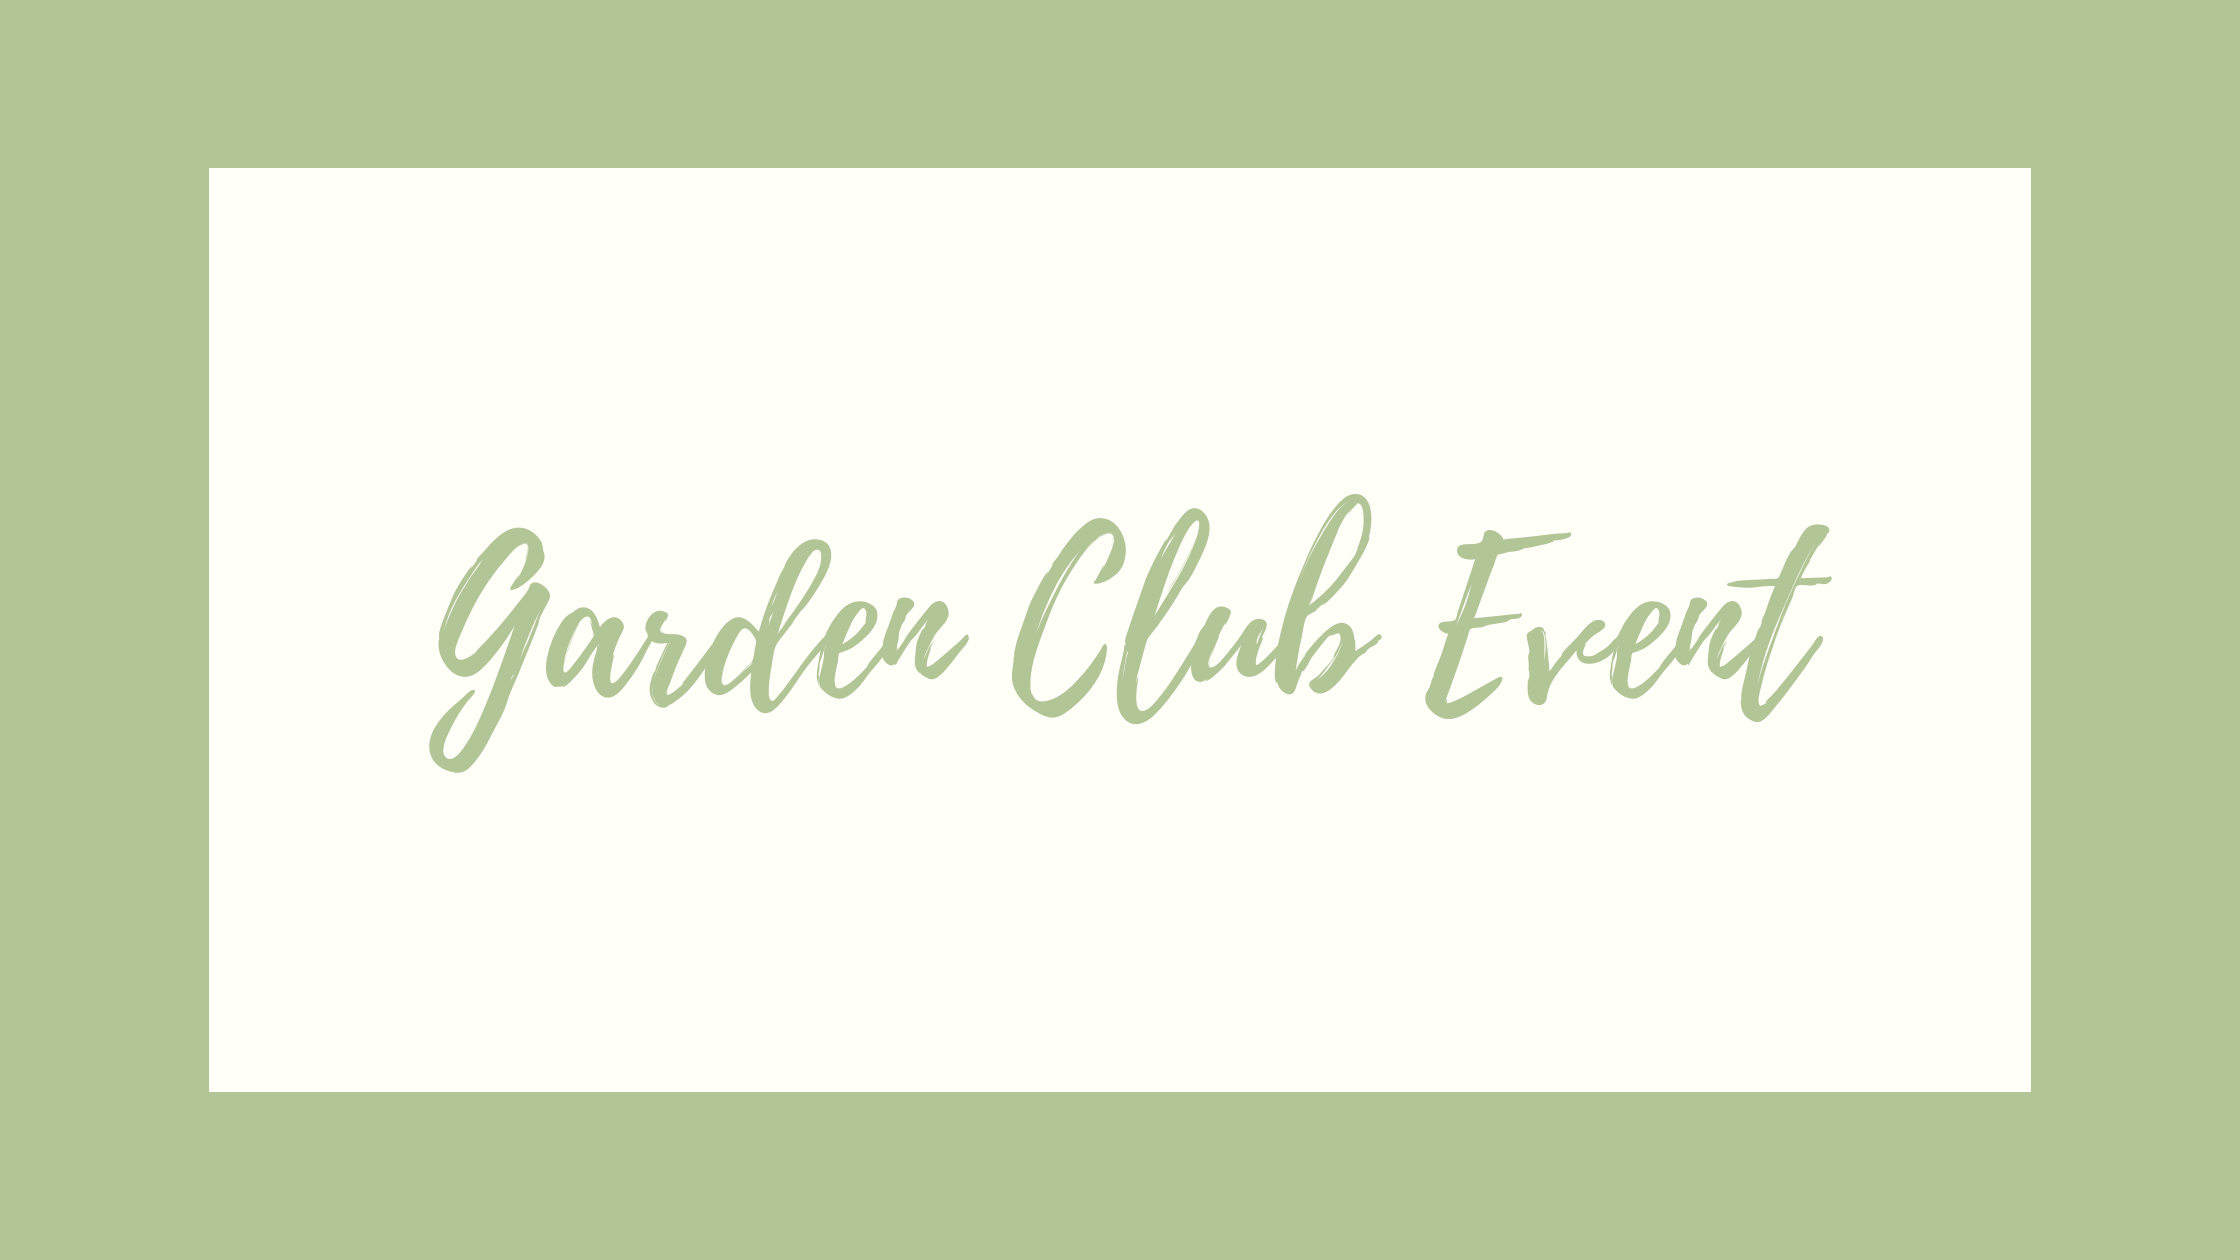 Garden Club Event at Nandina Home and Design in Greenville